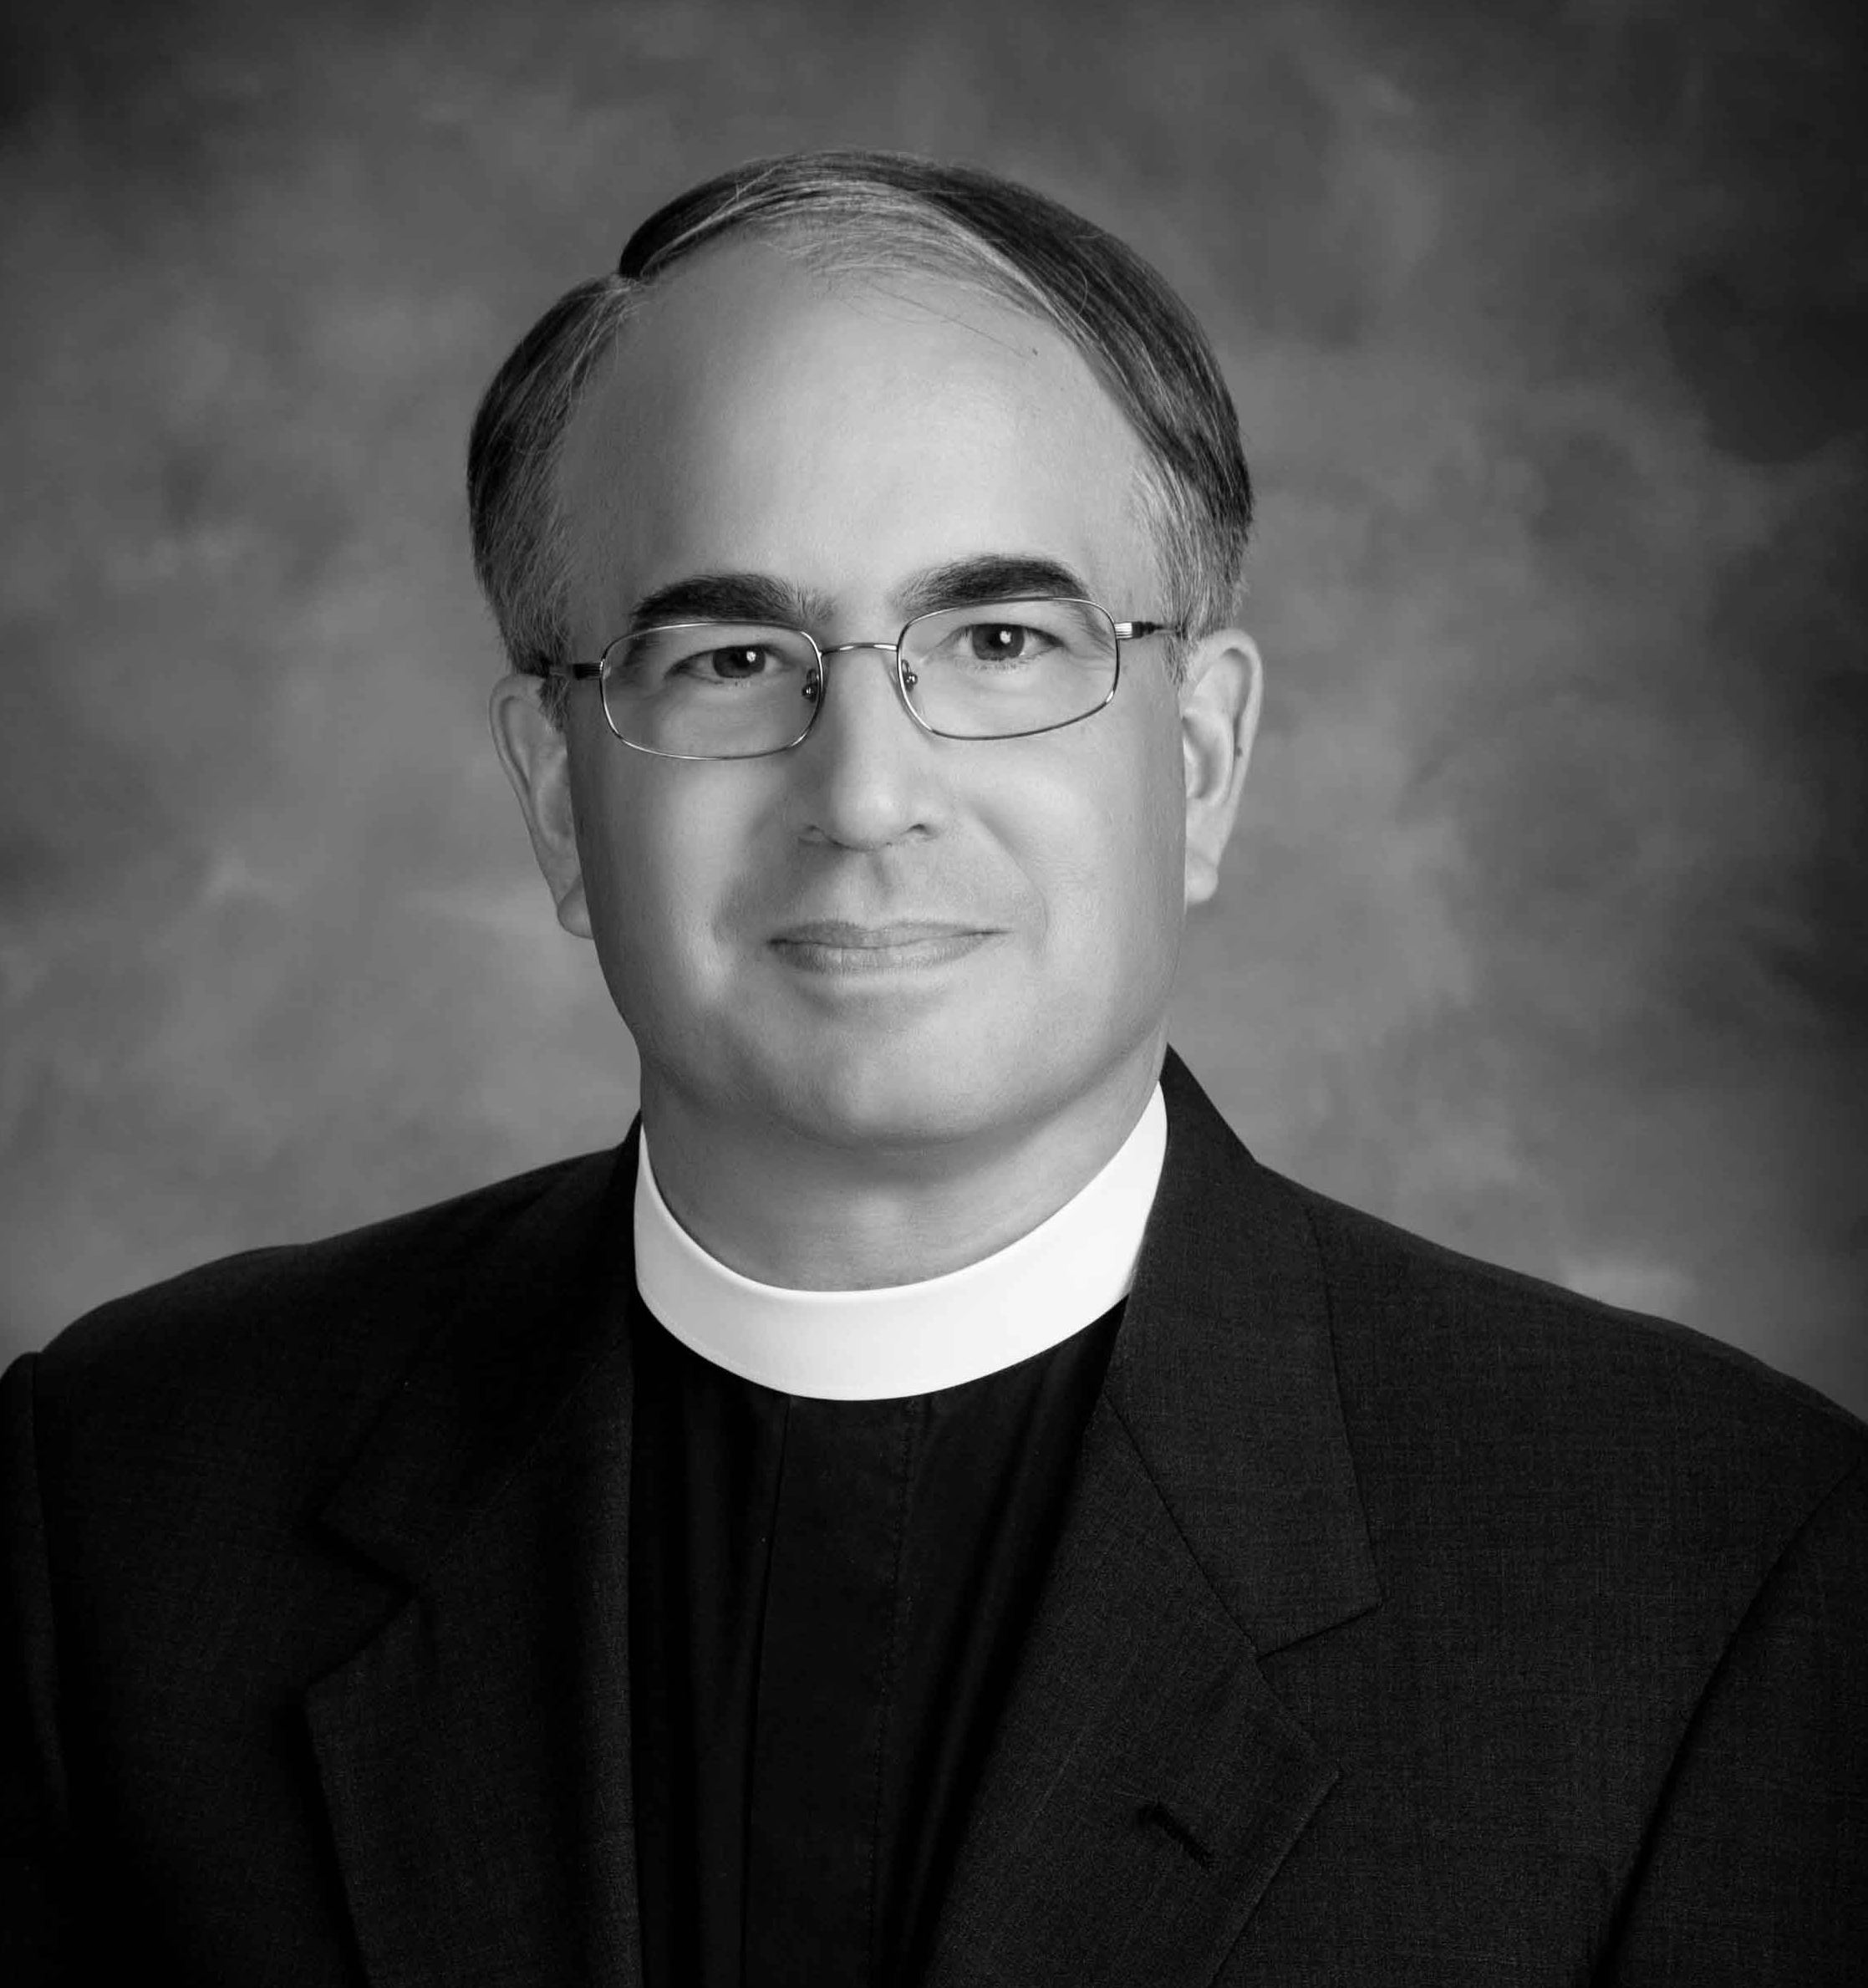 The Rev. Robert M. Alves